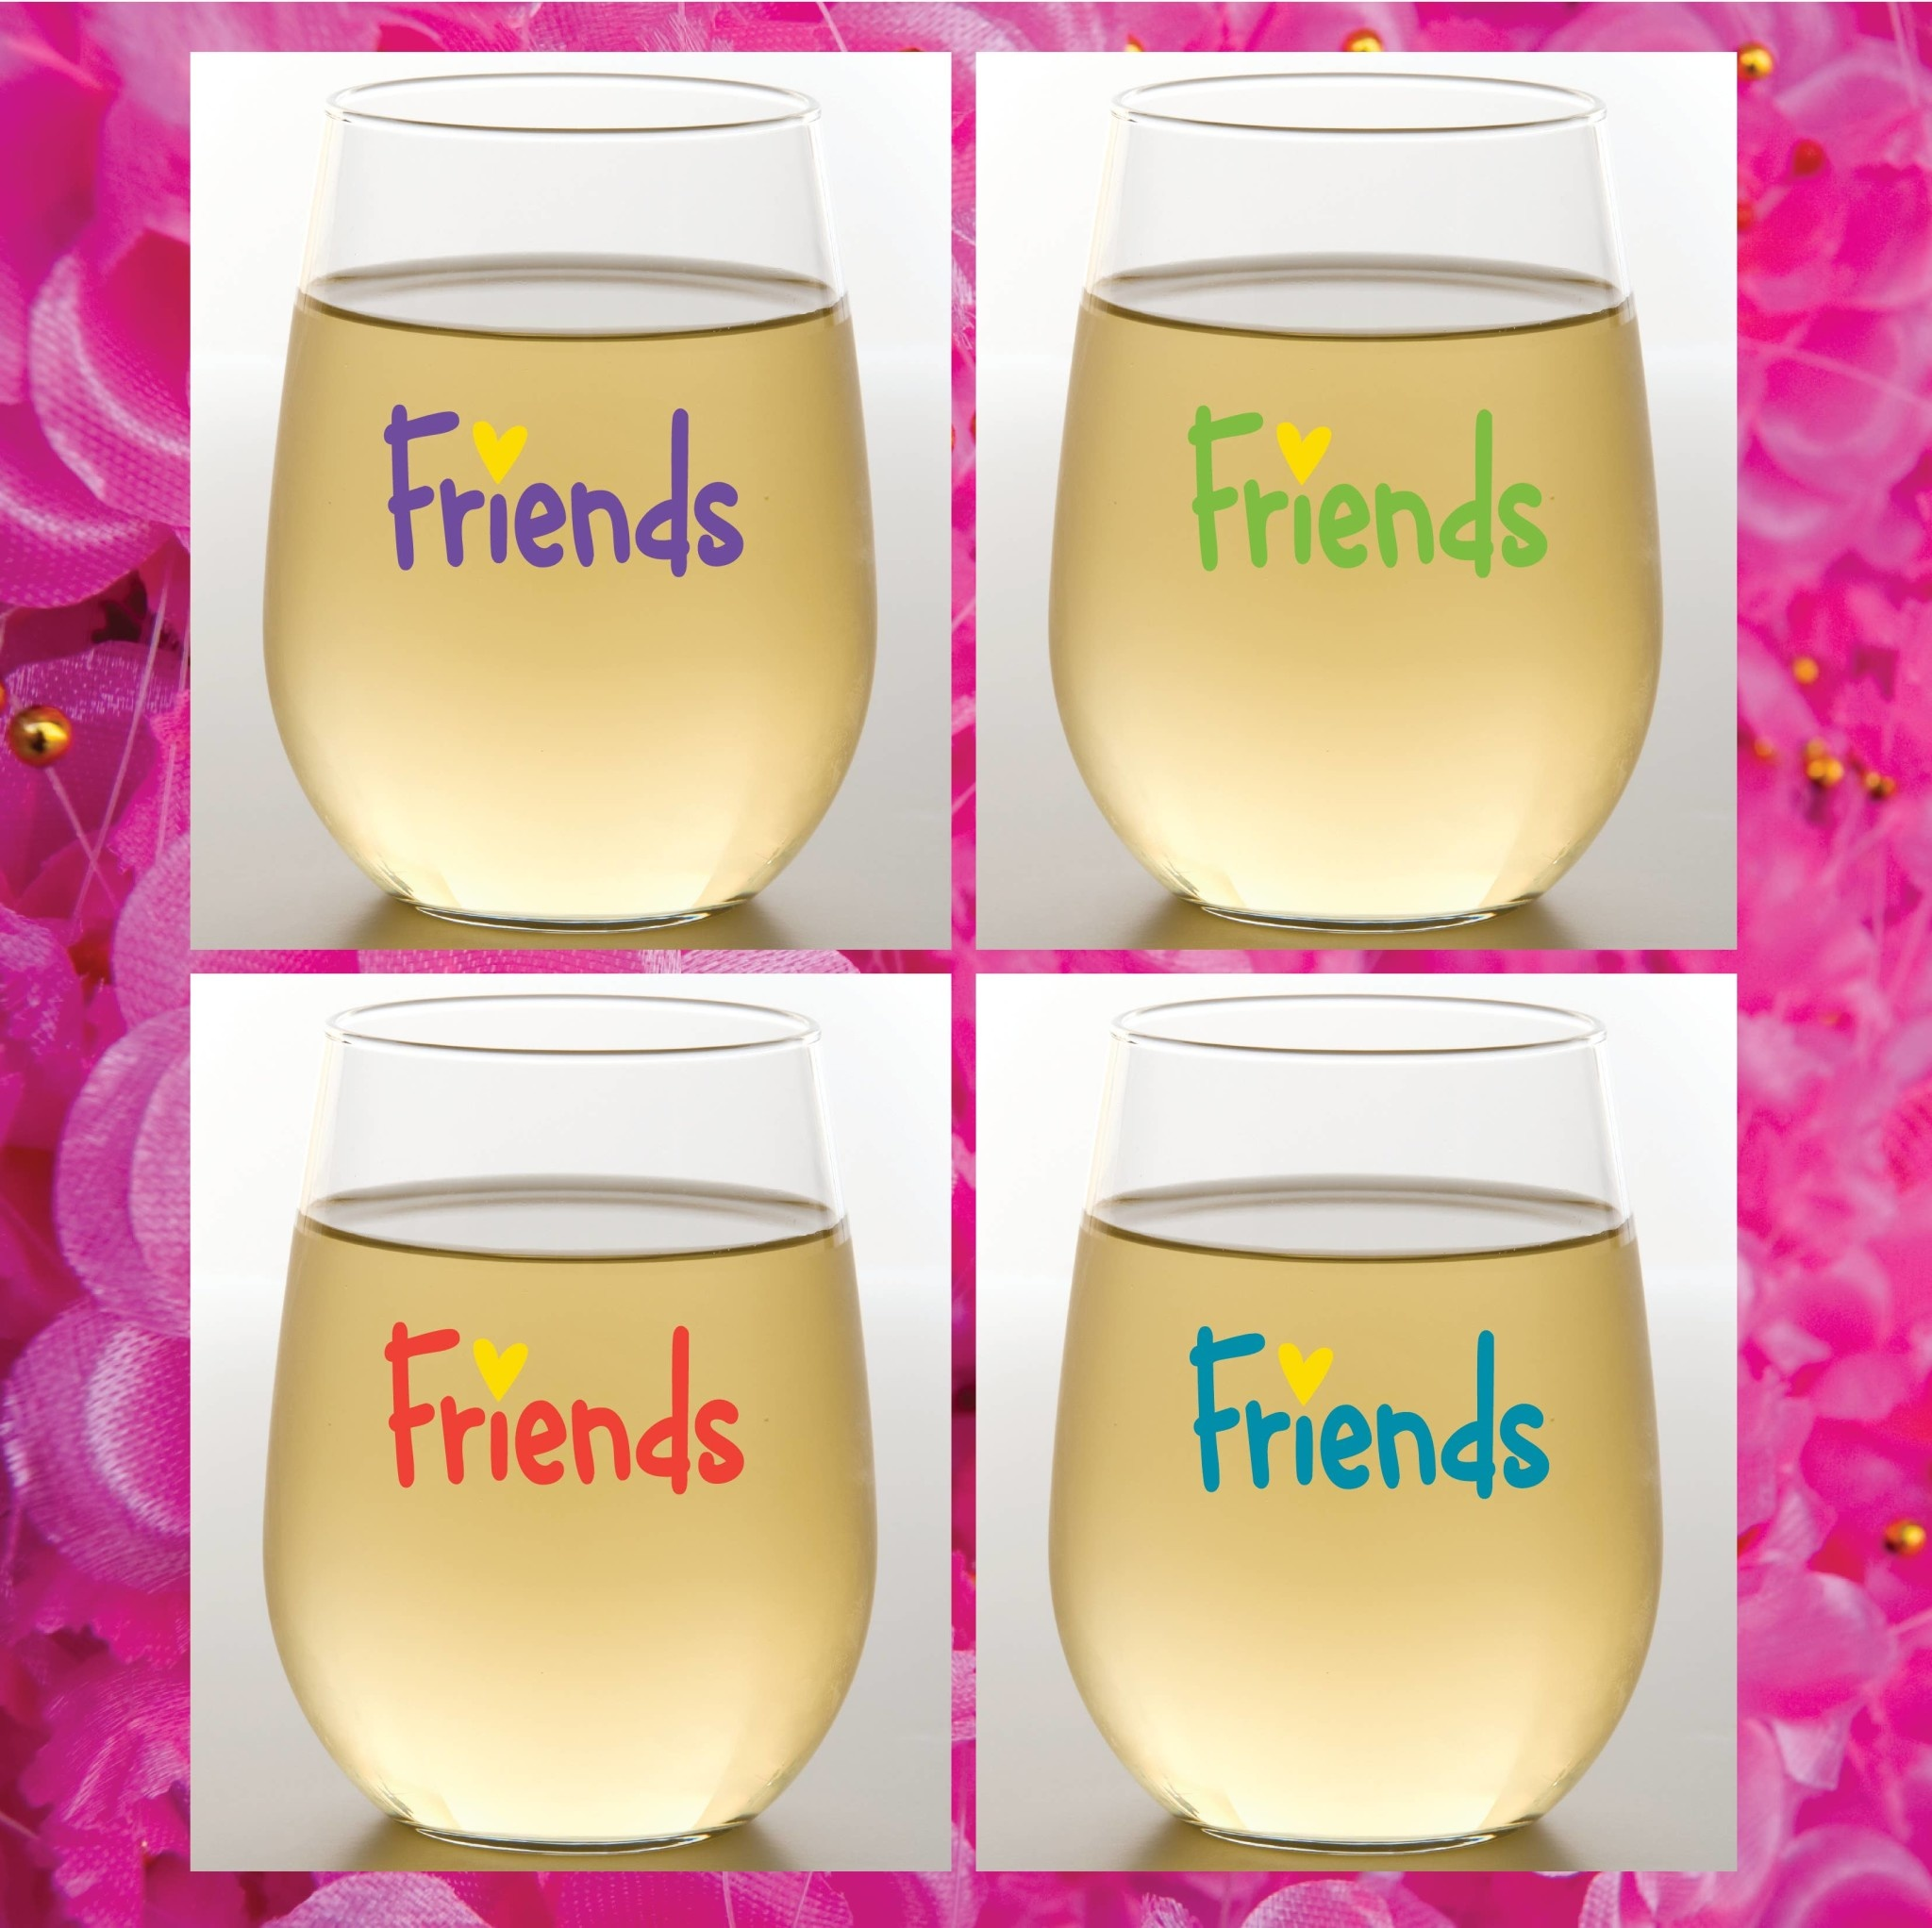 Wine-Oh! Friends Shatterproof Wine Glasses Set of 4